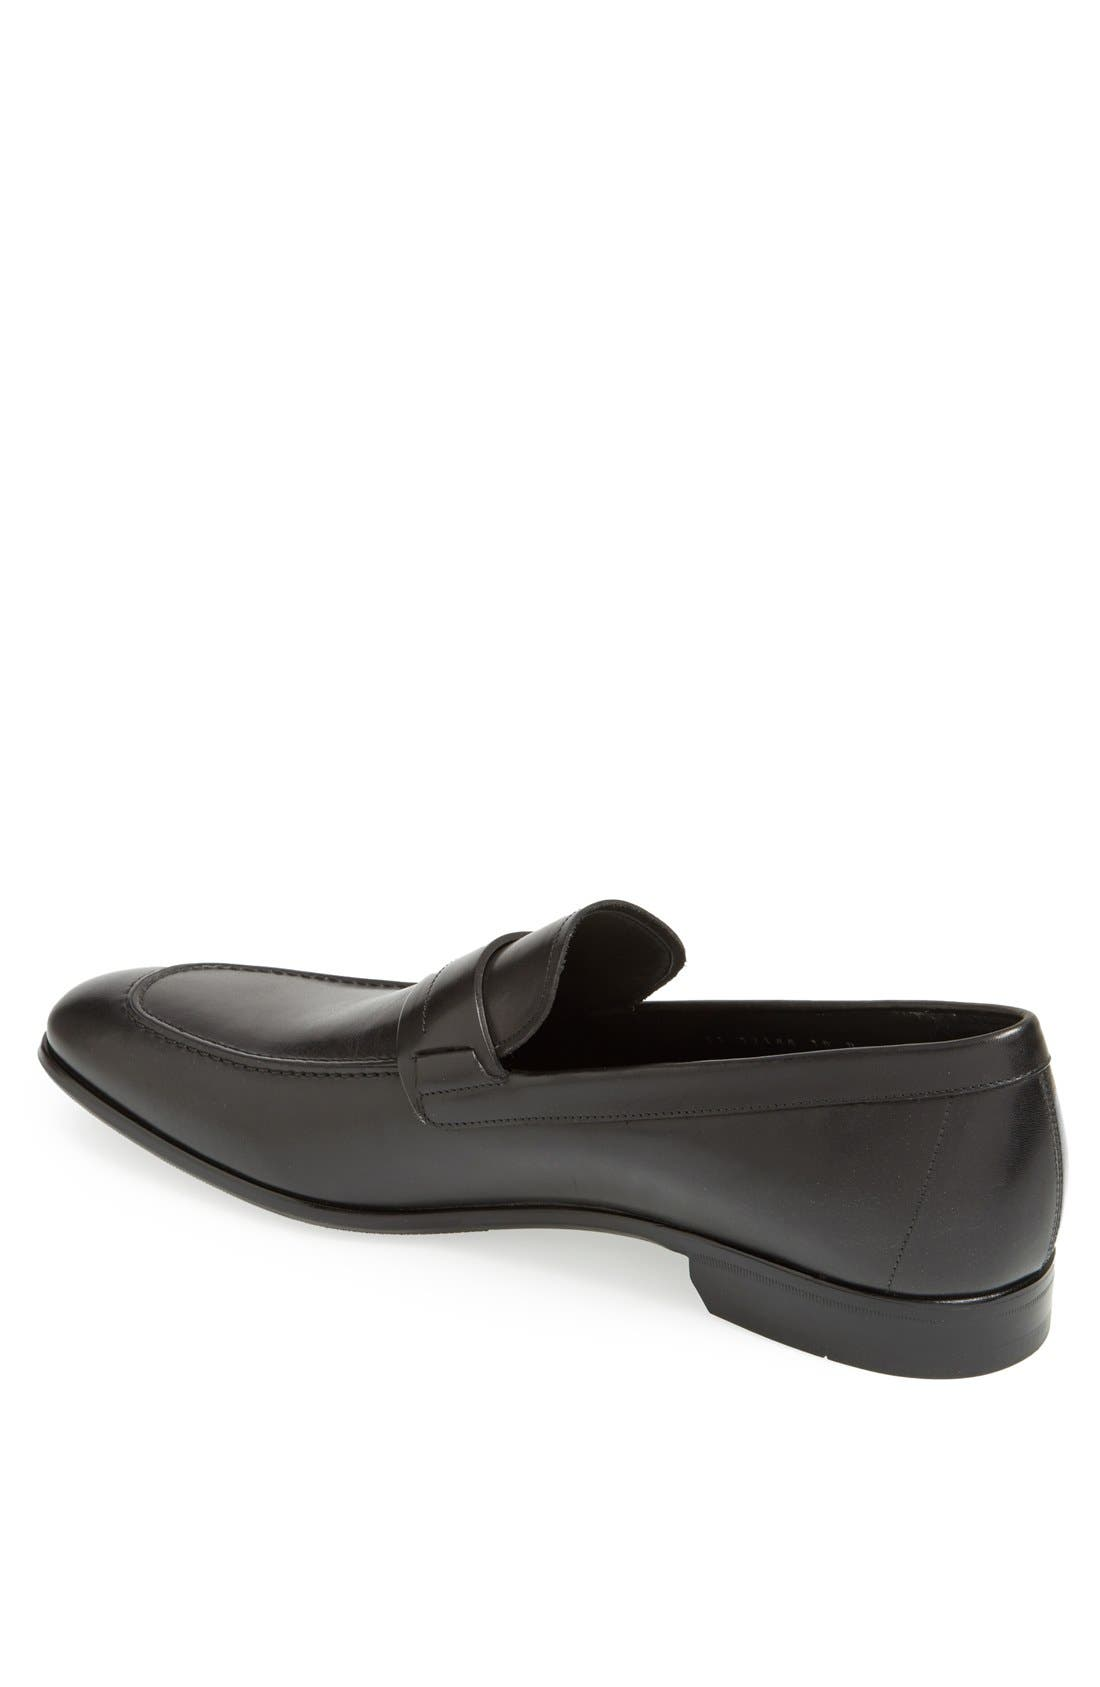 Alternate Image 2  - Salvatore Ferragamo 'Paros' Loafer